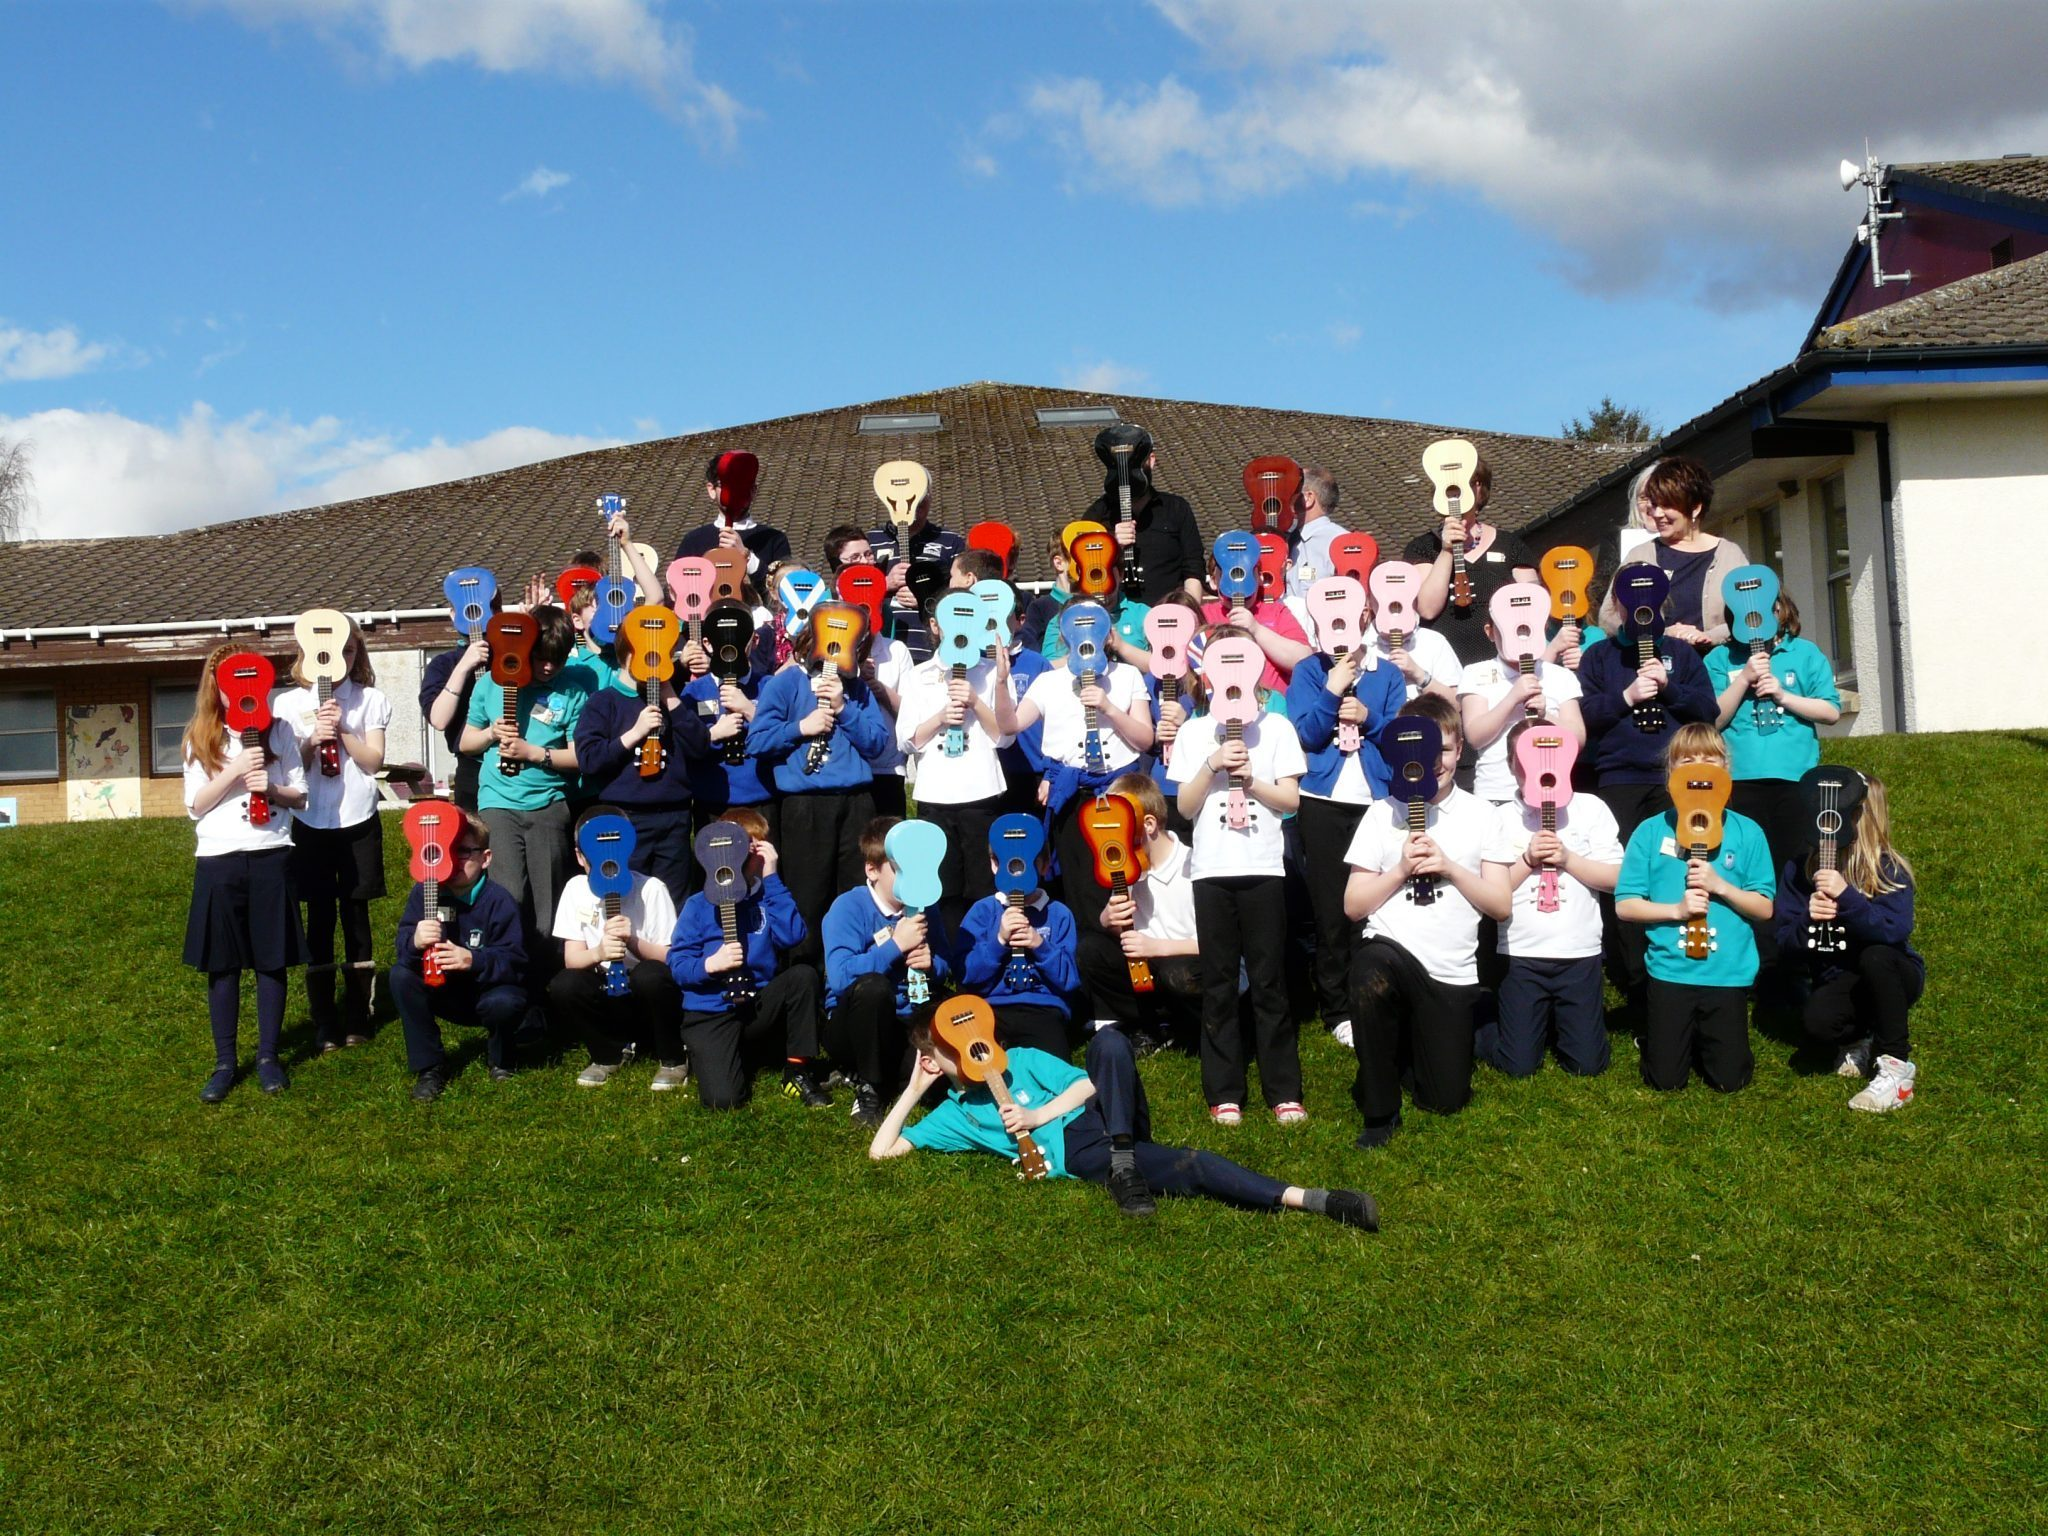 Pupils hold ukuleles in front of their faces for a funny group photo.